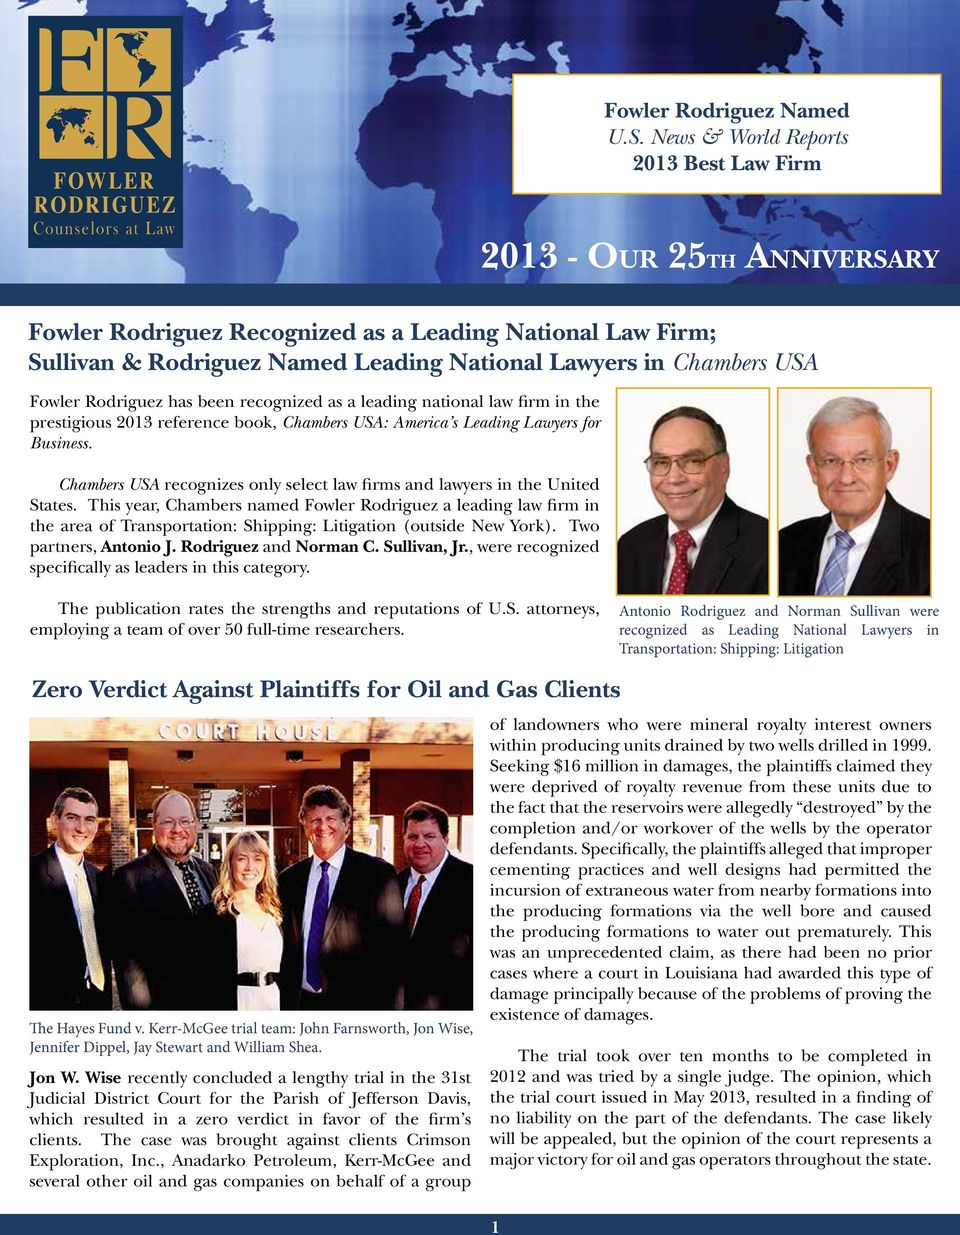 Fowler Rodriguez has been recognized as a leading national law firm in the prestigious 2013 reference book, Chambers USA: America s Leading Lawyers for Business.